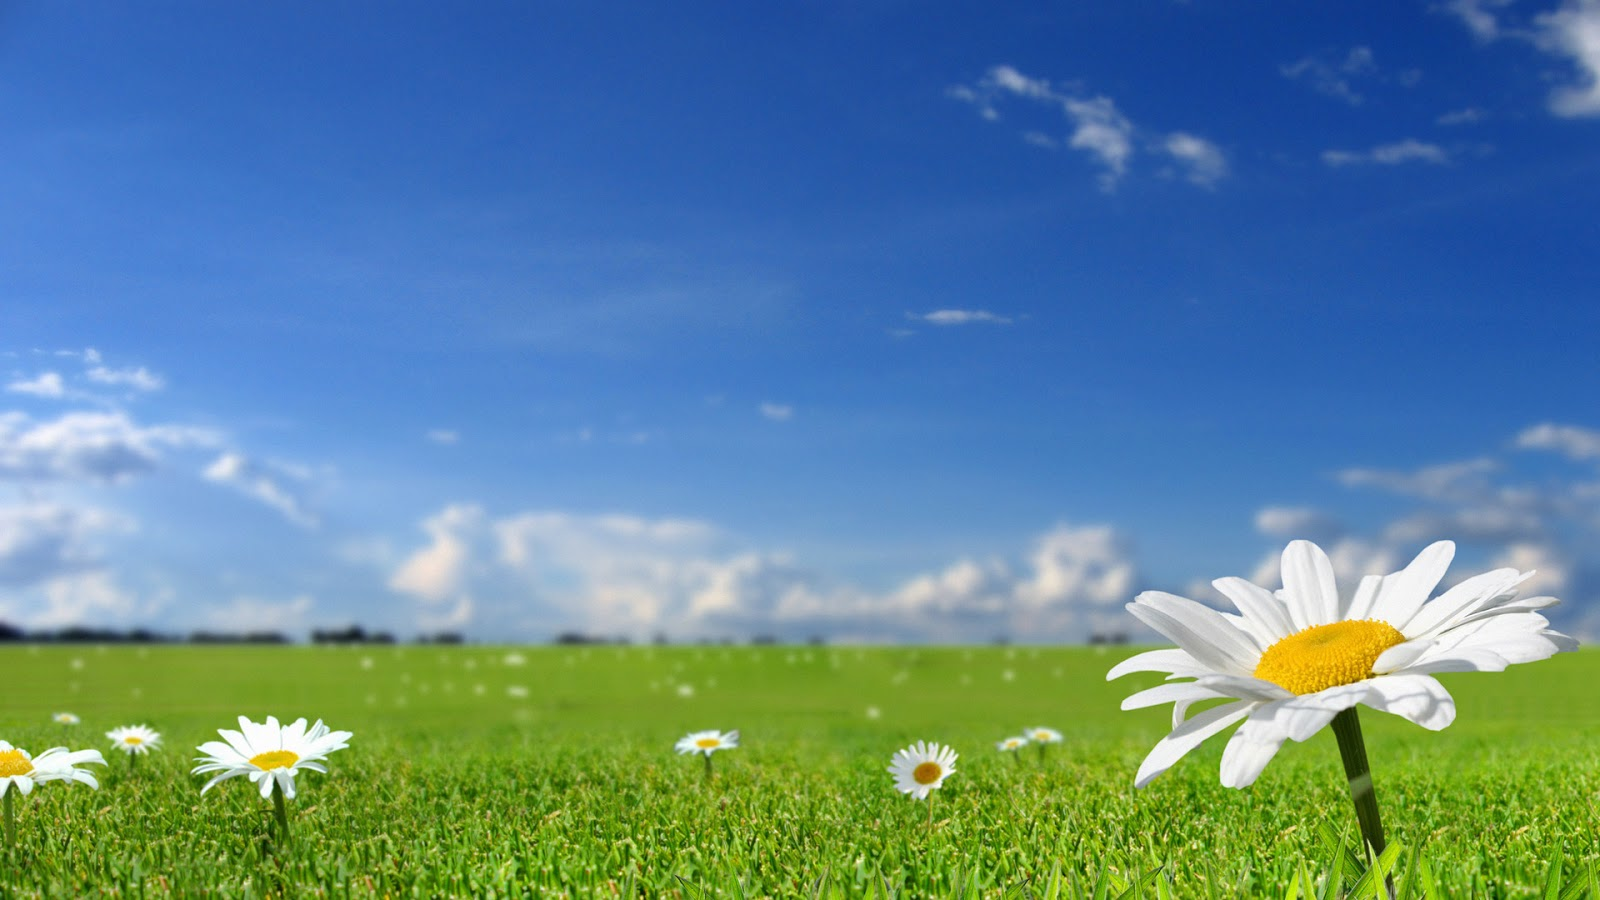 Hd Flower Backgrounds: Flowers HD Background Wallpapers